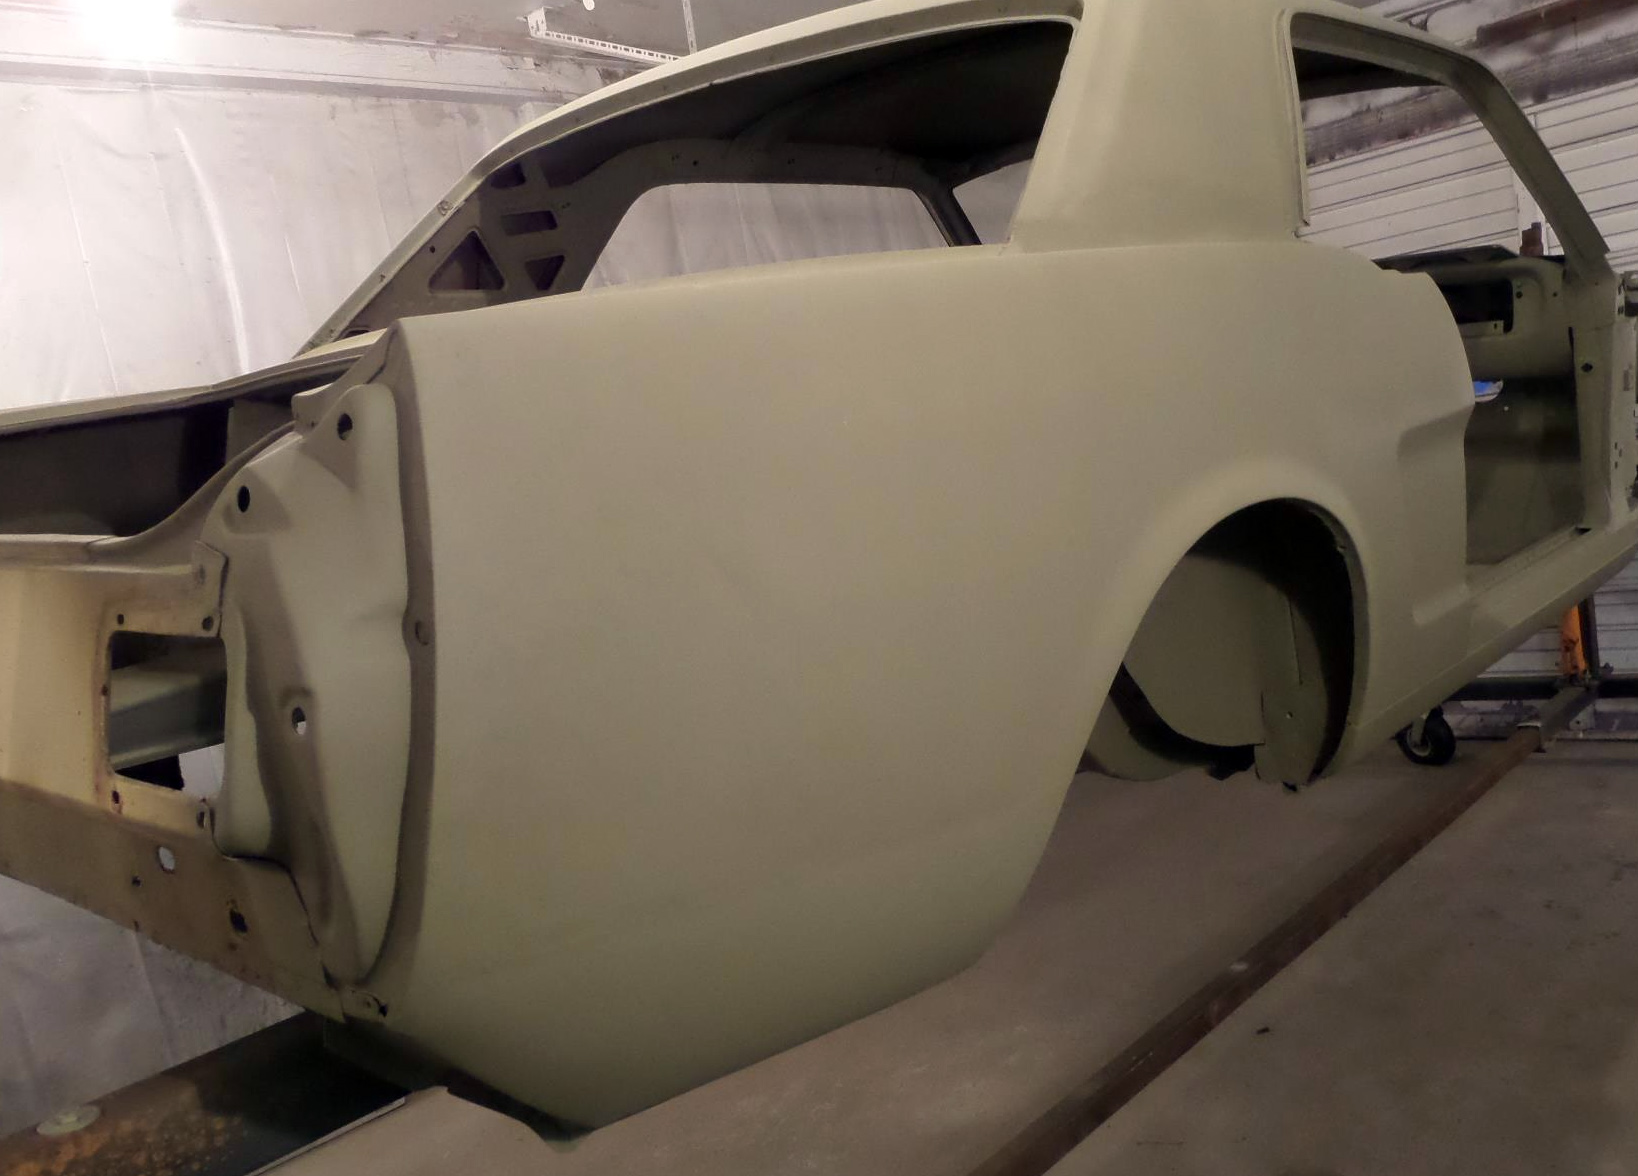 1966 Mustang quarter panel rust repair - after